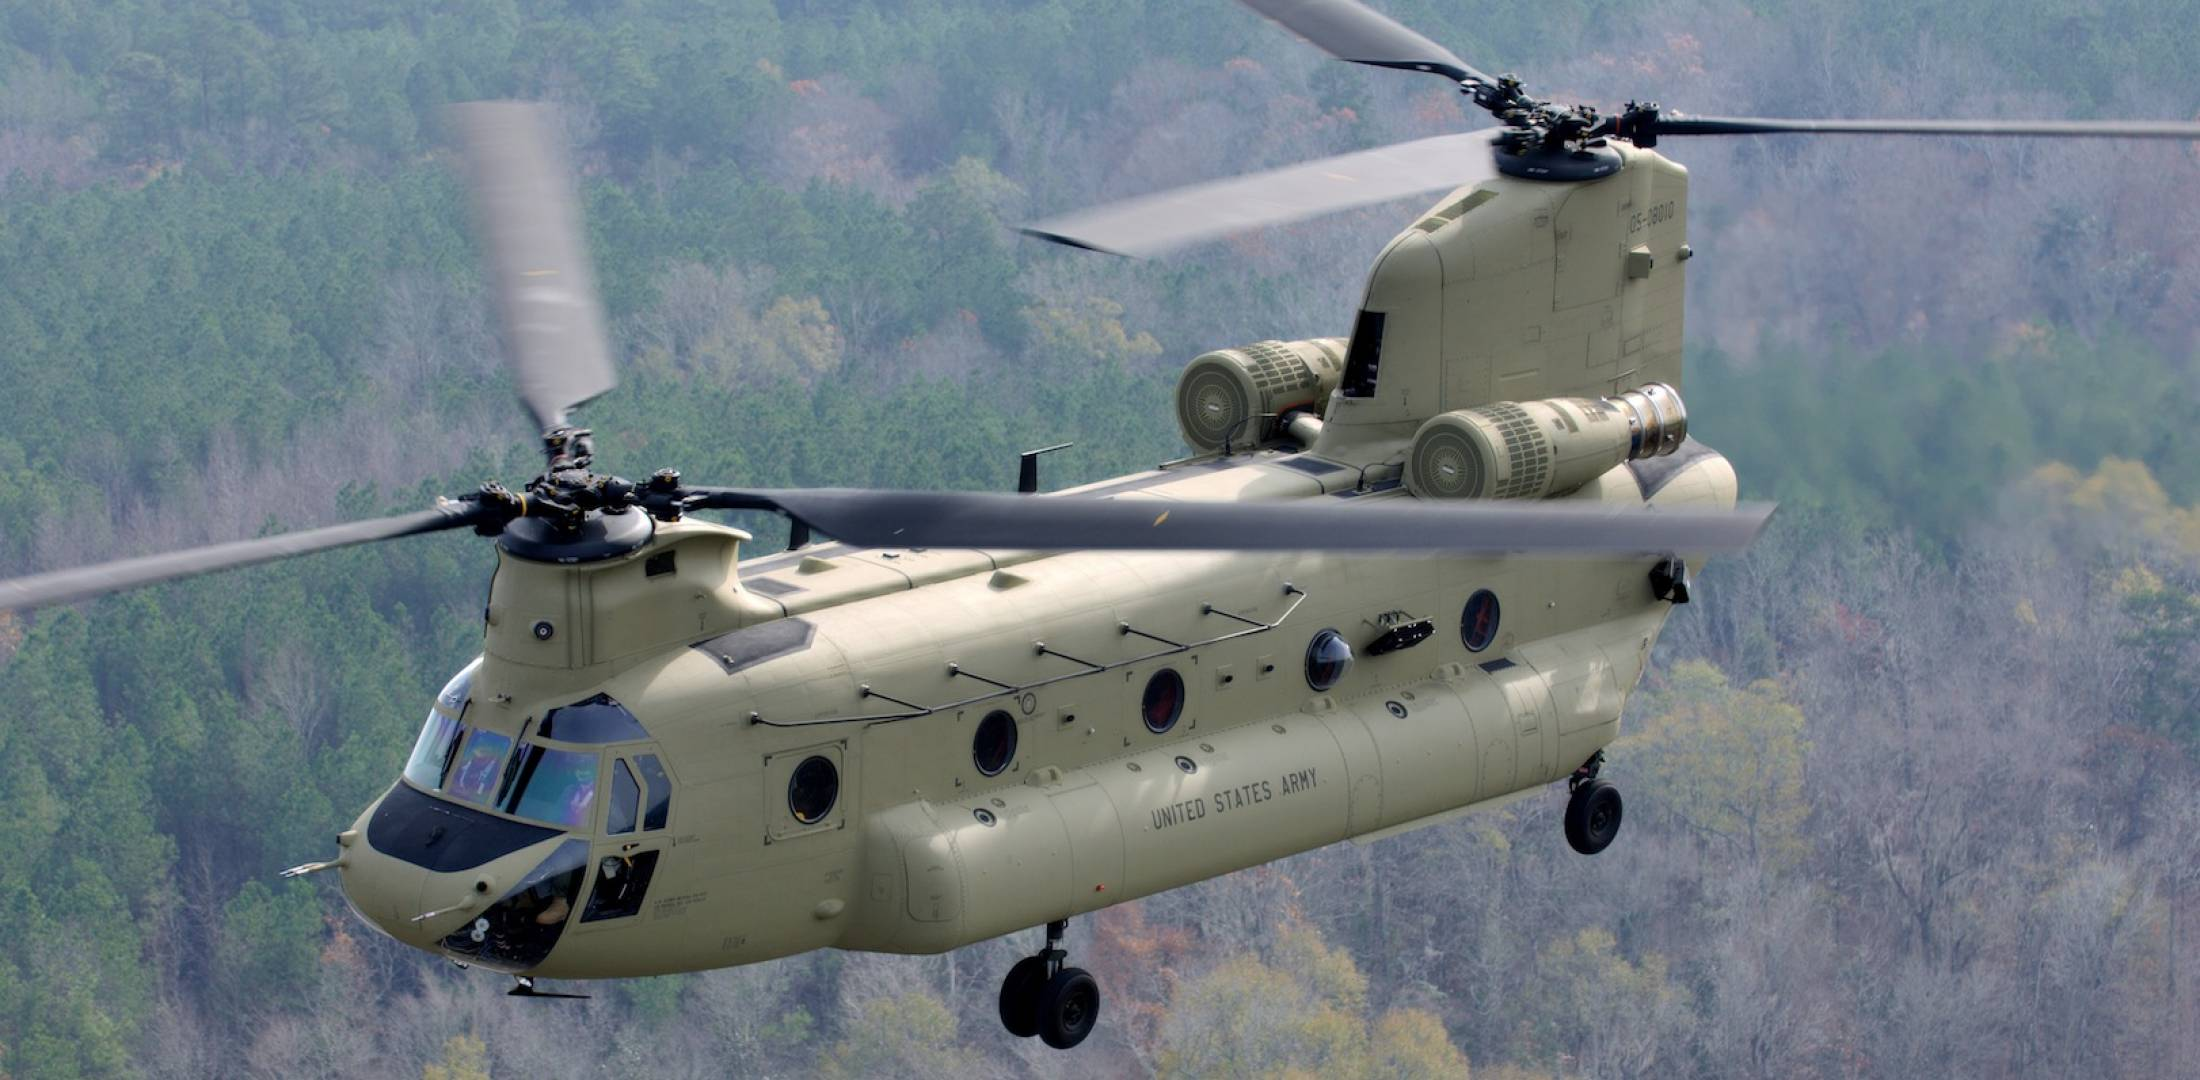 s helicopters for sale with Boeing Prepares Begin Ch 47f Chinook Block 2 Upgrade on False Flag In Las Vegas T1211 S10 also Boeing Prepares Begin Ch 47f Chinook Block 2 Upgrade besides Novitec Rosso Ferrari F12 Berli ta N Largo S For Sale 1271482 in addition Mercedes Gle 350d Coupe 4 Matic Hamann 04 2017 5 000 Kms For Sale 10090756 furthermore As Russias Tactical Jets Leave Syria Its Most Advanced 1765448933.